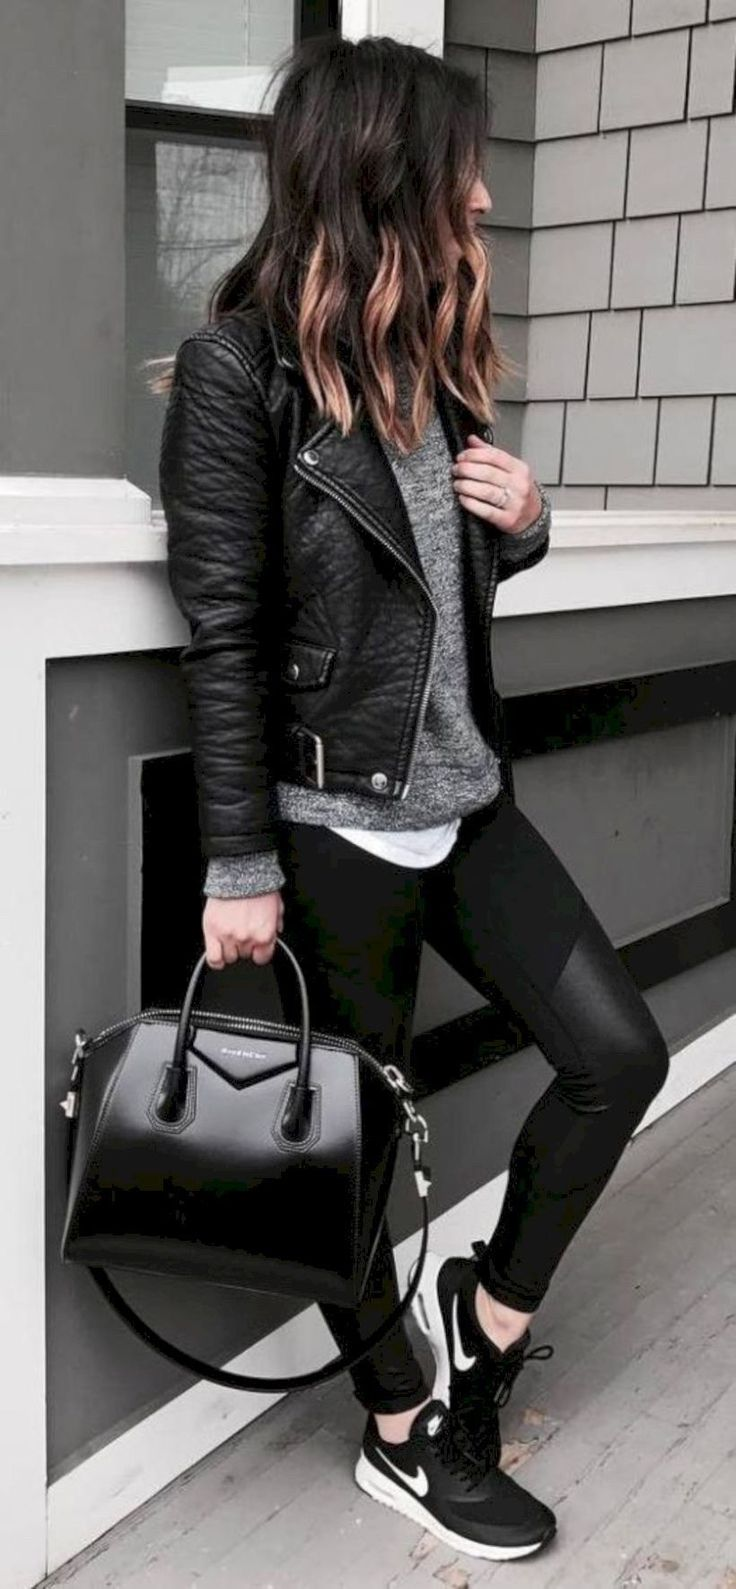 51 Stunning Casual Fall Outfit with Sneakers #Outfit #Women Outfit #Women Outfit